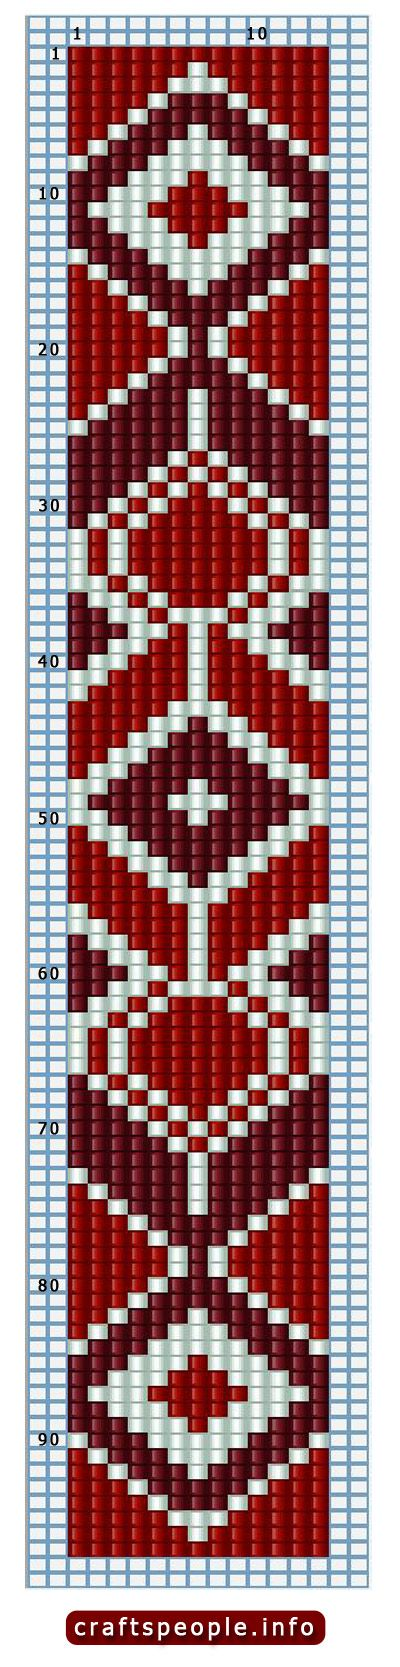 Bead Bracelet Patterns Seed Loom Más                                                                                                                                                                                 Más